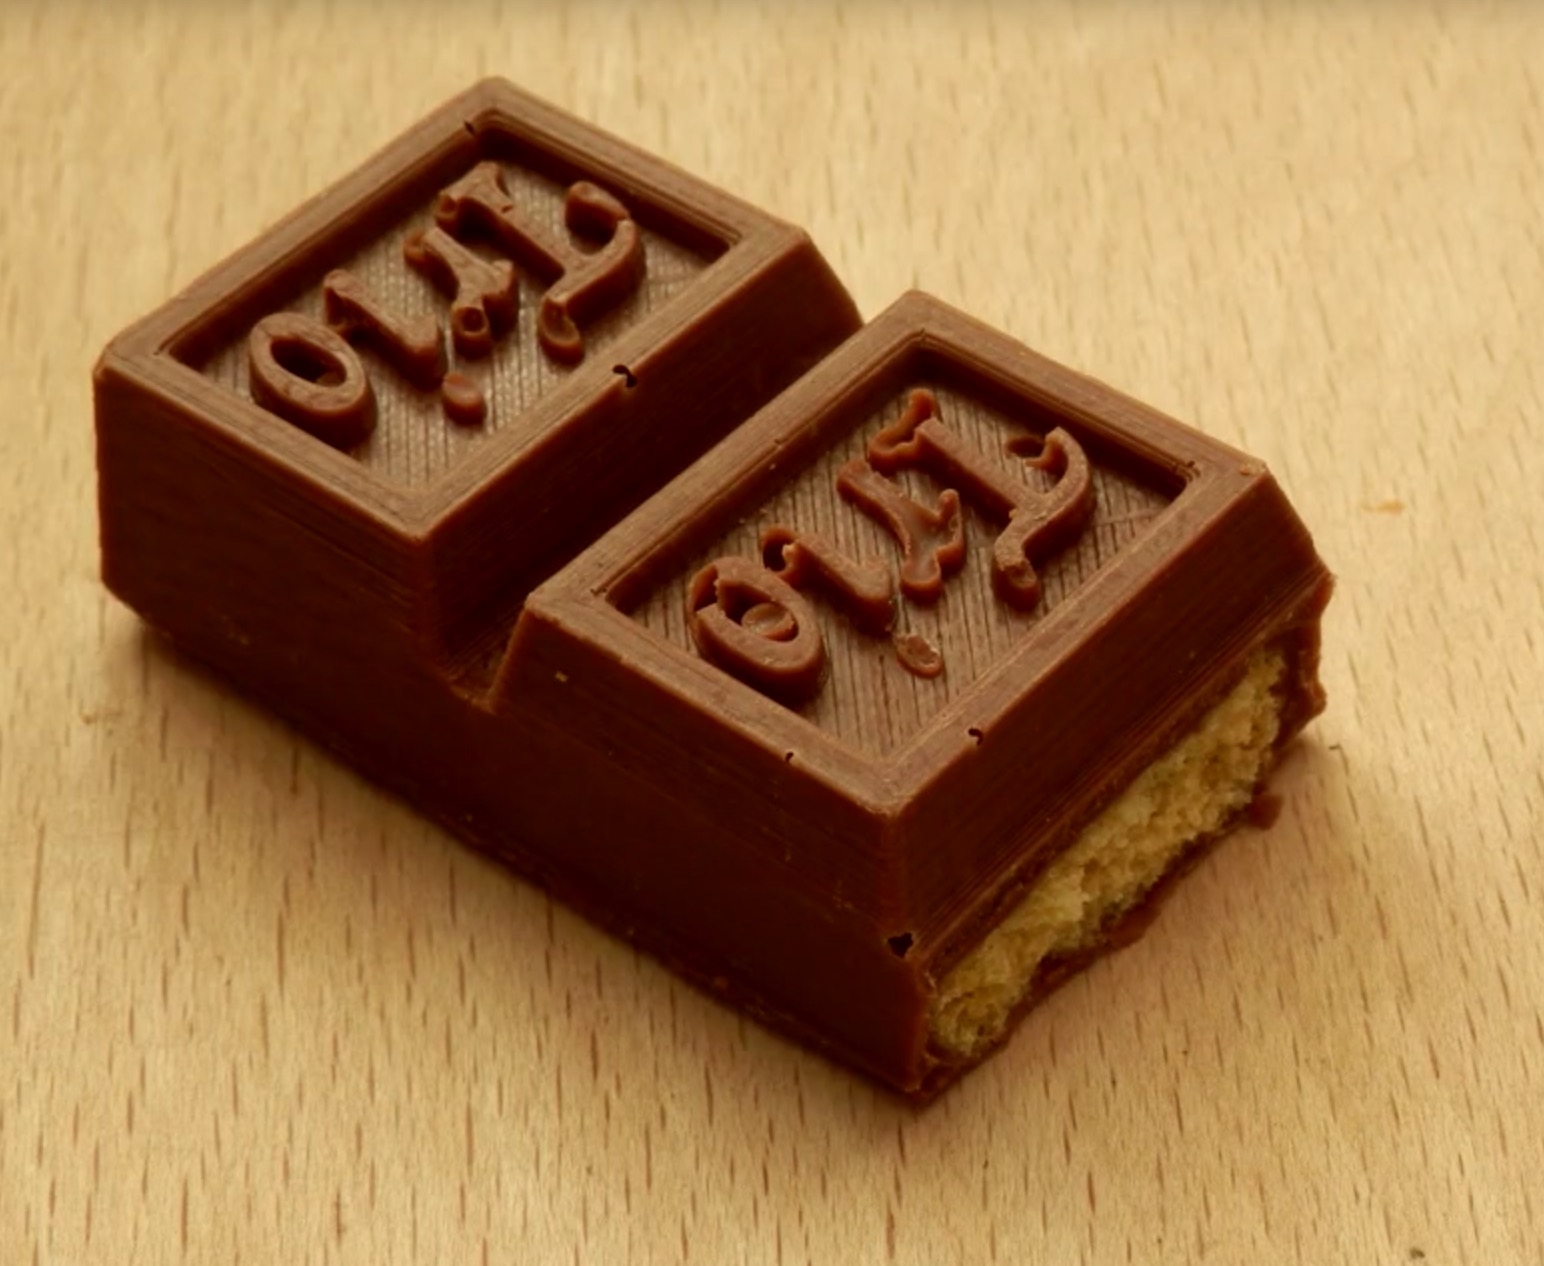 The recreated Trio chocolate bar. And apparently it tastes very good!